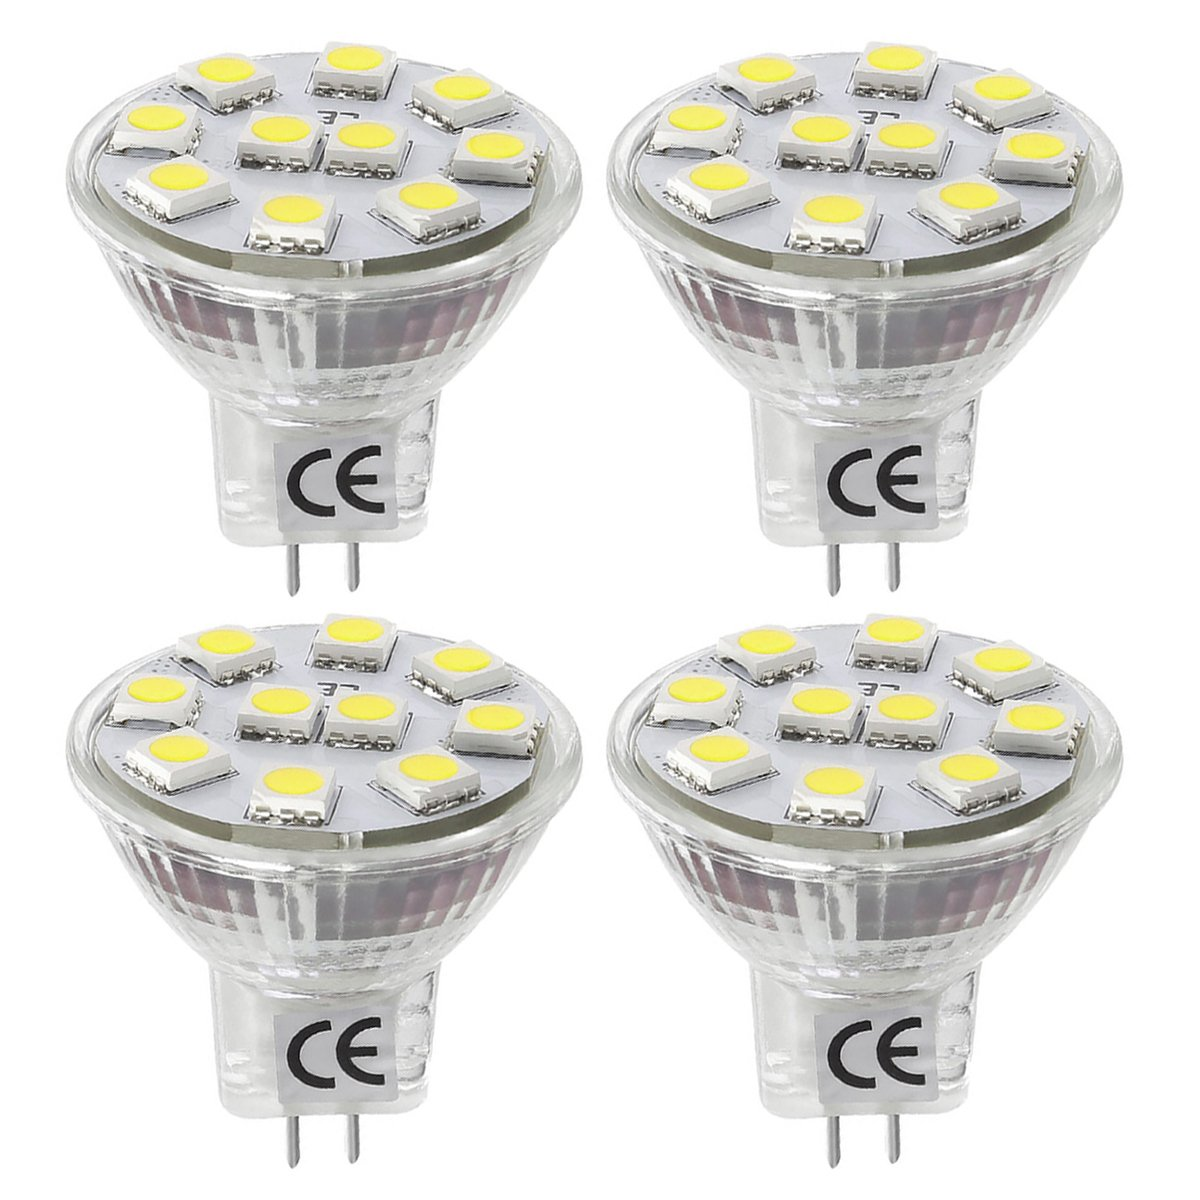 20w Led Halogen: LE 1.8W MR11 GU4.0 LED Bulbs, 20W Halogen Bulbs Equivalent